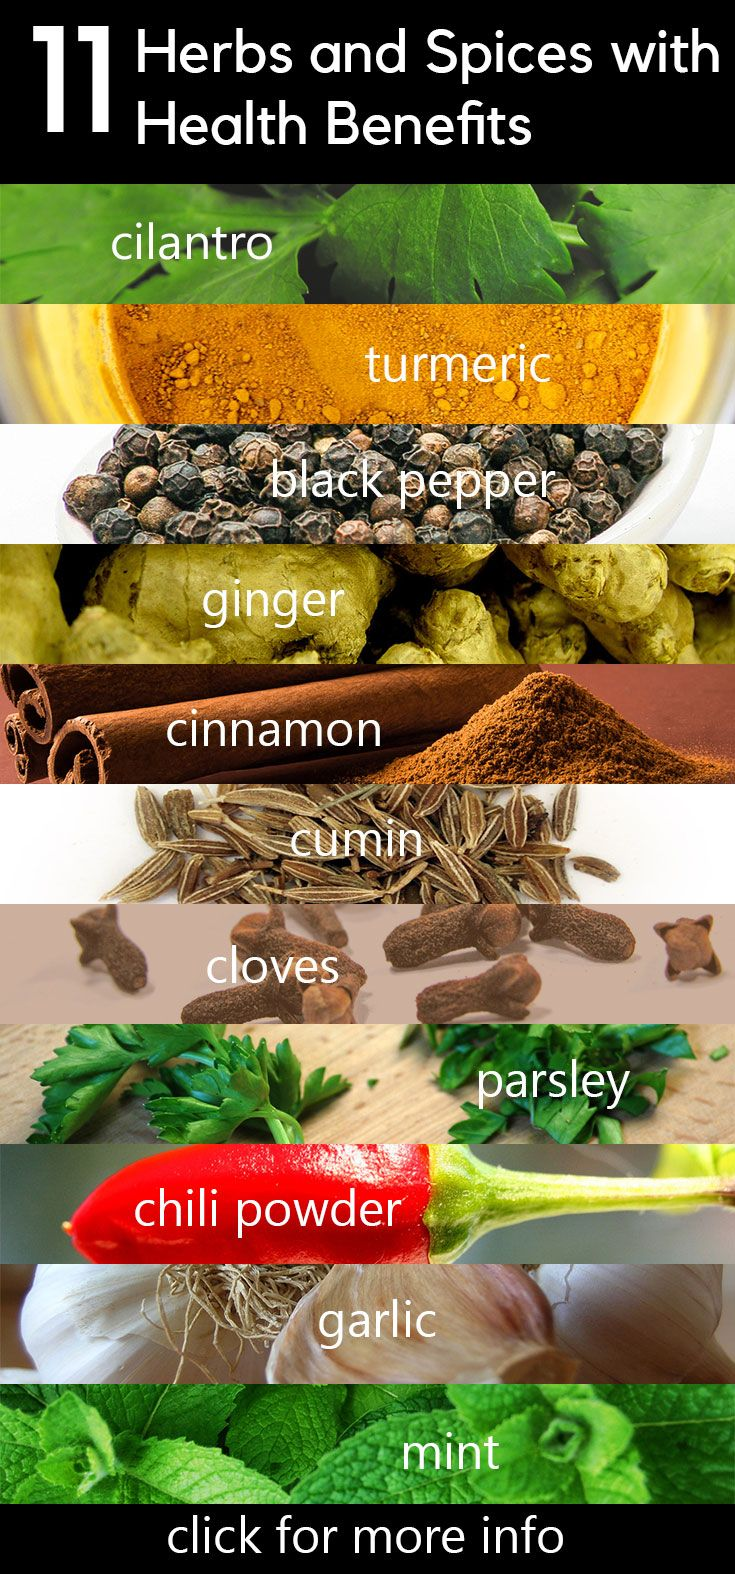 Eat These 11 Herbs and Spices for a Long, Healthy Life. Reduce disease and increase your life. Cilantro, turmeric, black pepper, ginger, cumin, cinnamon, cloves, parsley, chili powder, garlic, mint.